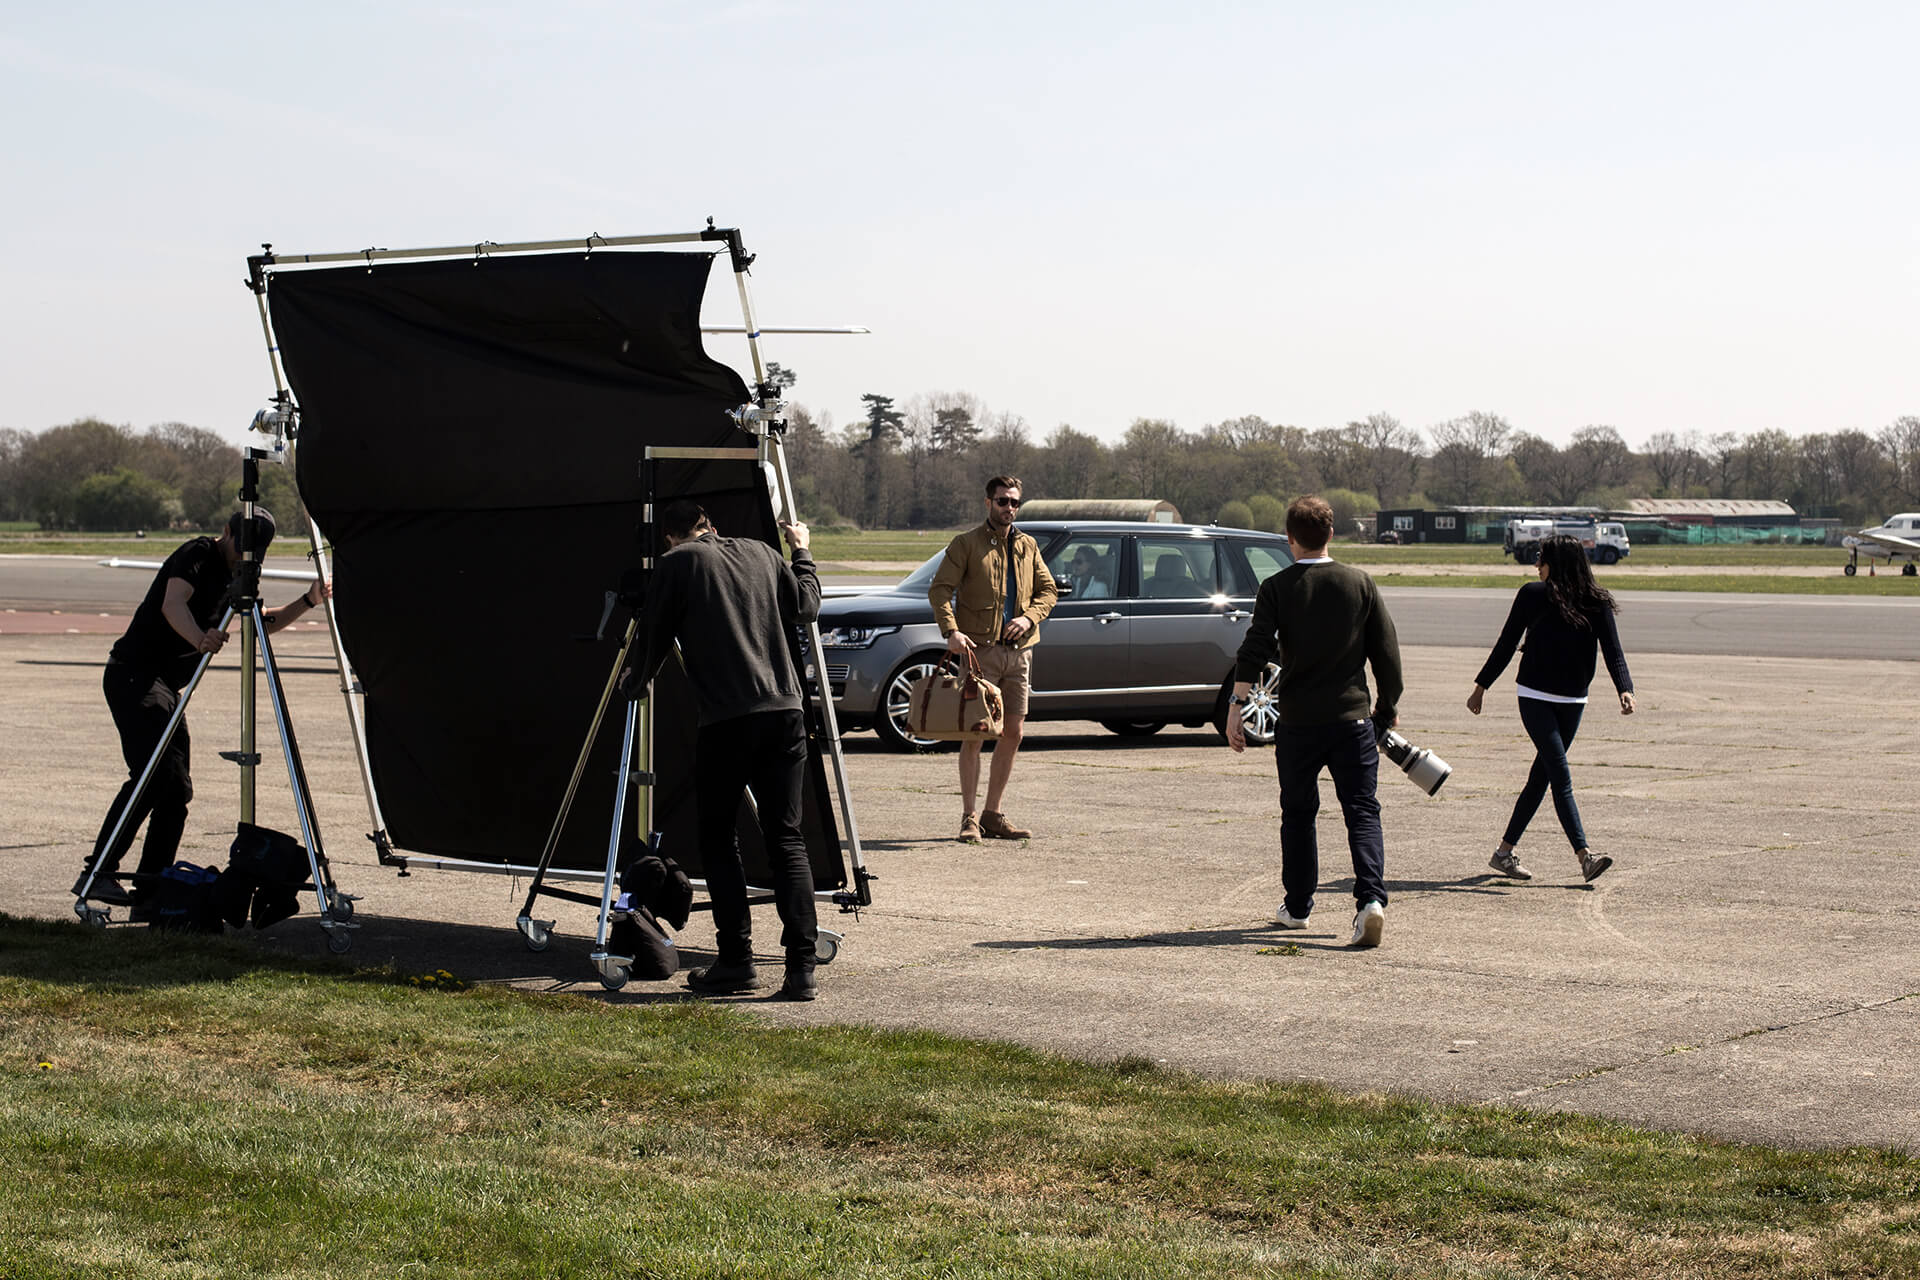 WeAreShuffle, Agency, Creative, Photography, Film, Production, Land Rover, Range Rover, Plane, Barbour, Fashion, Run Way, Model, Crew, Behind the scenes